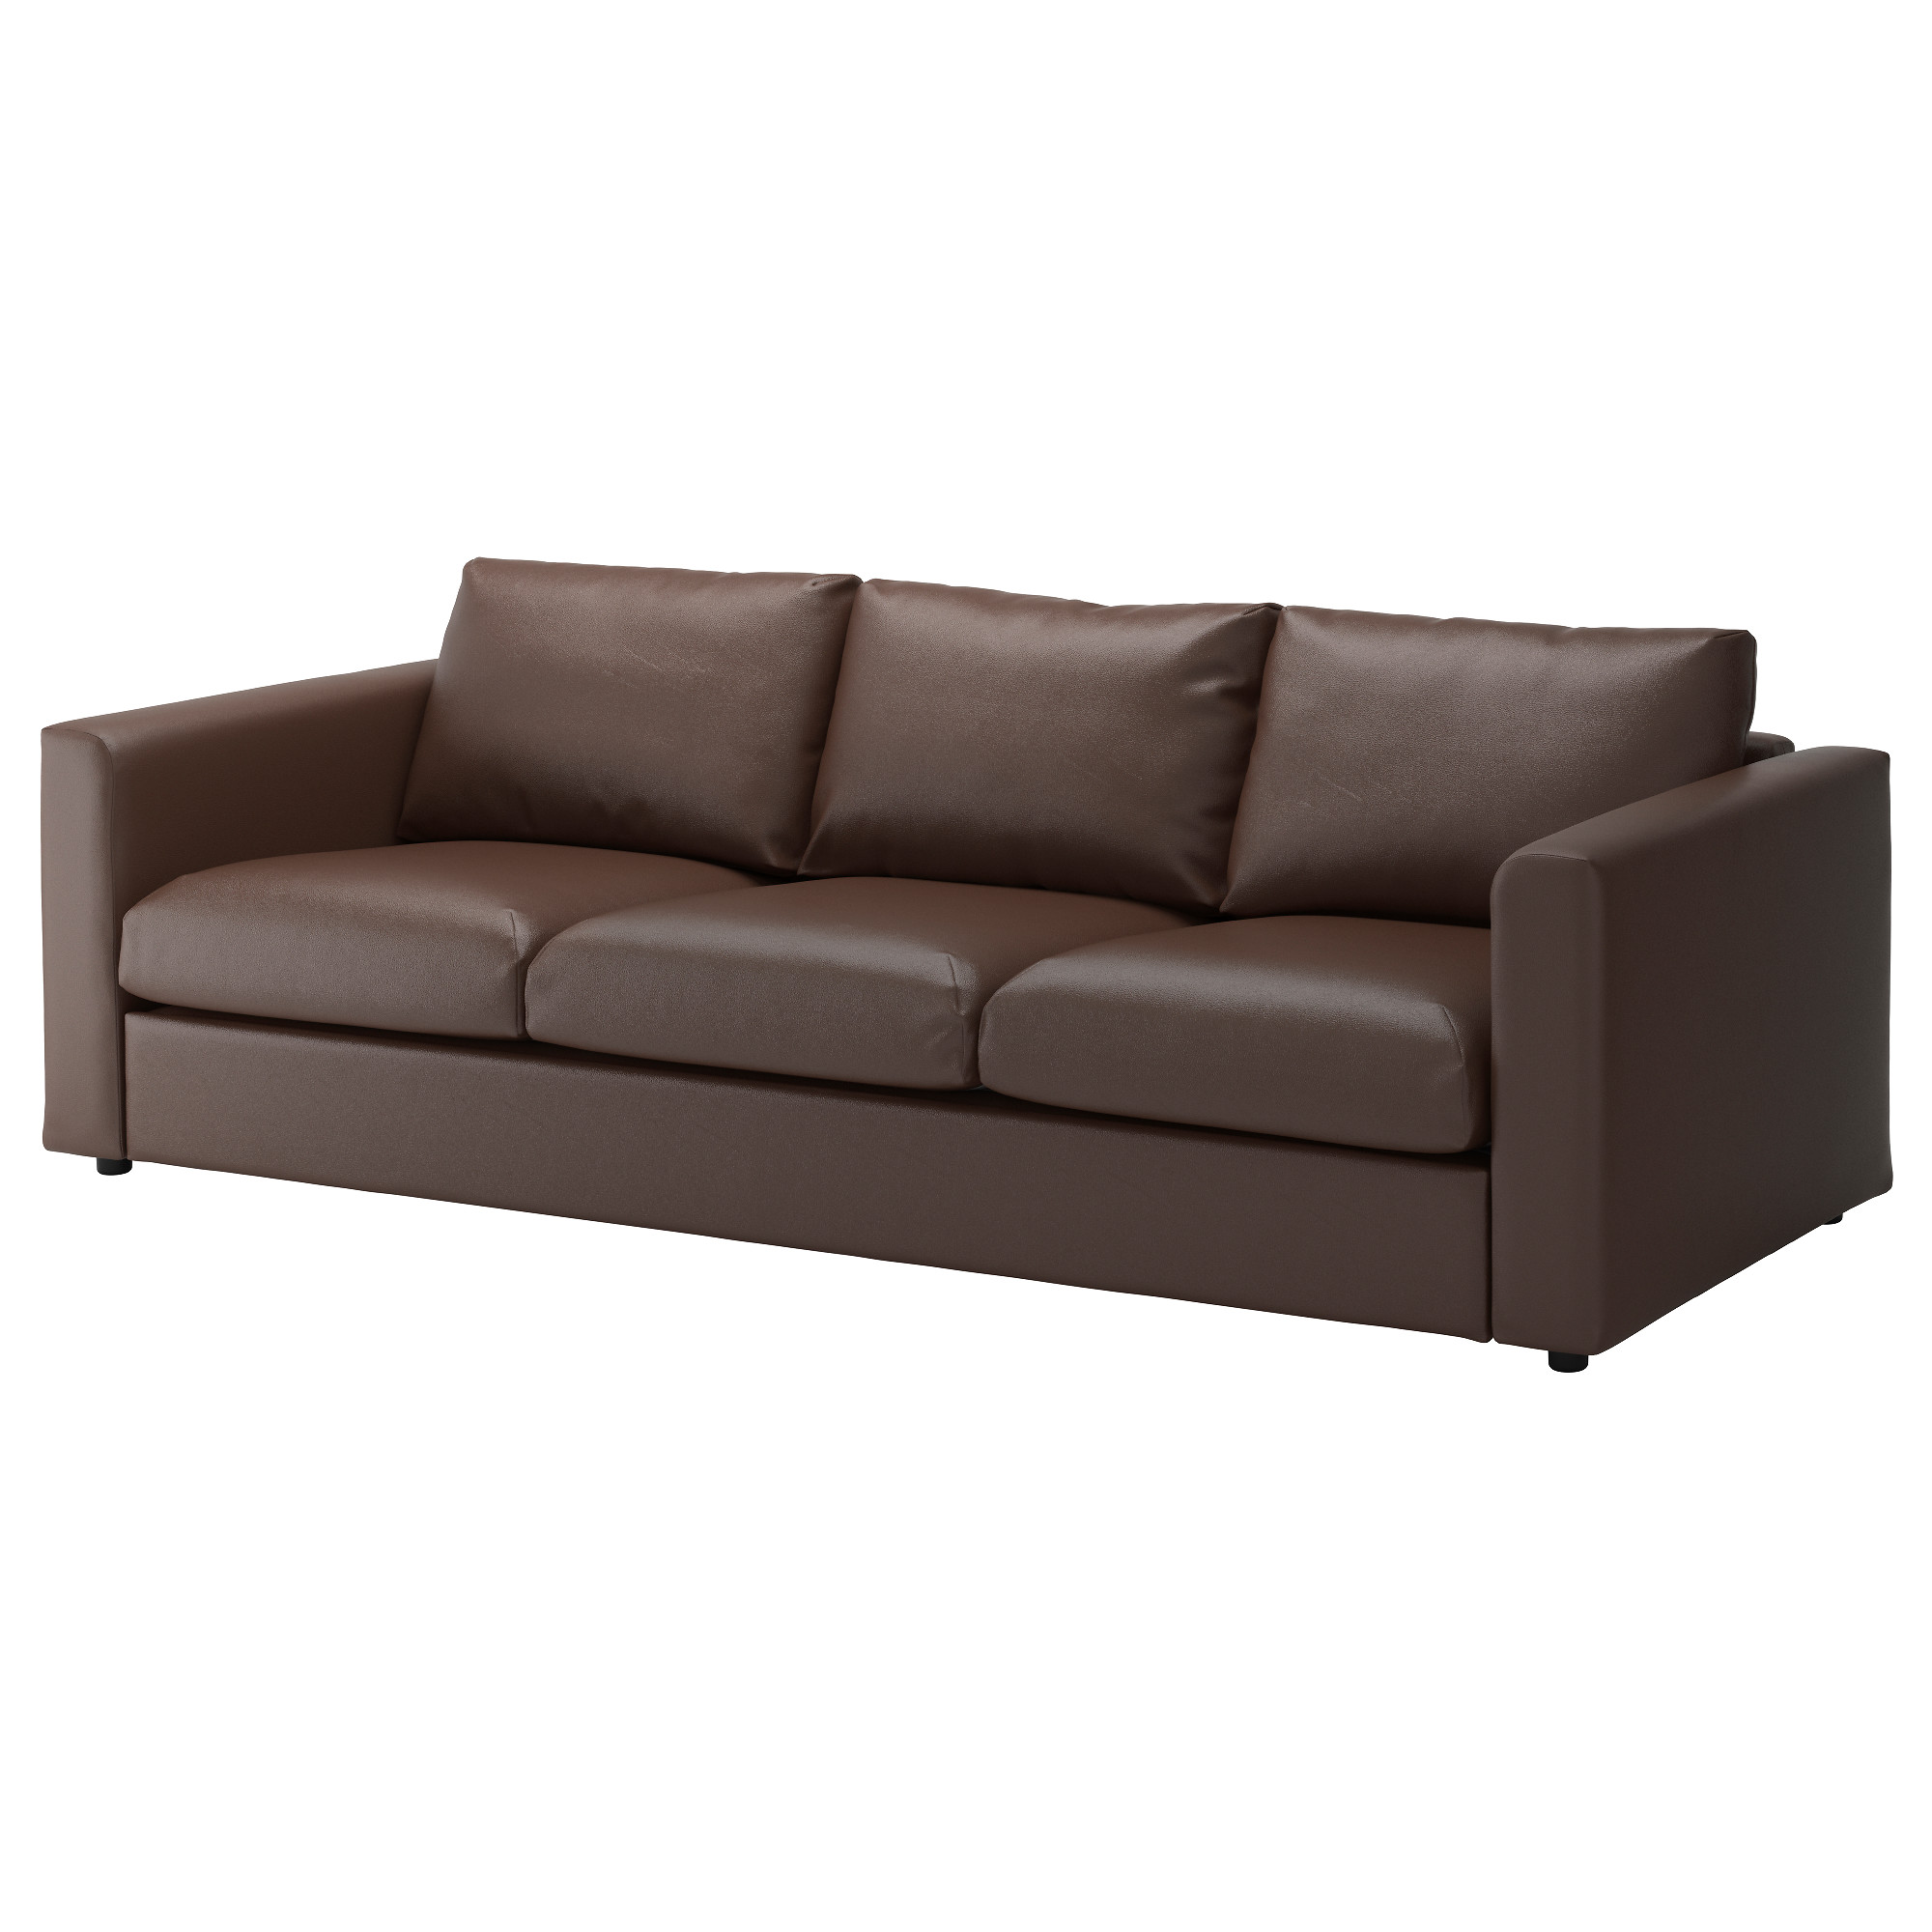 VIMLE Sofa Gunnared medium gray IKEA